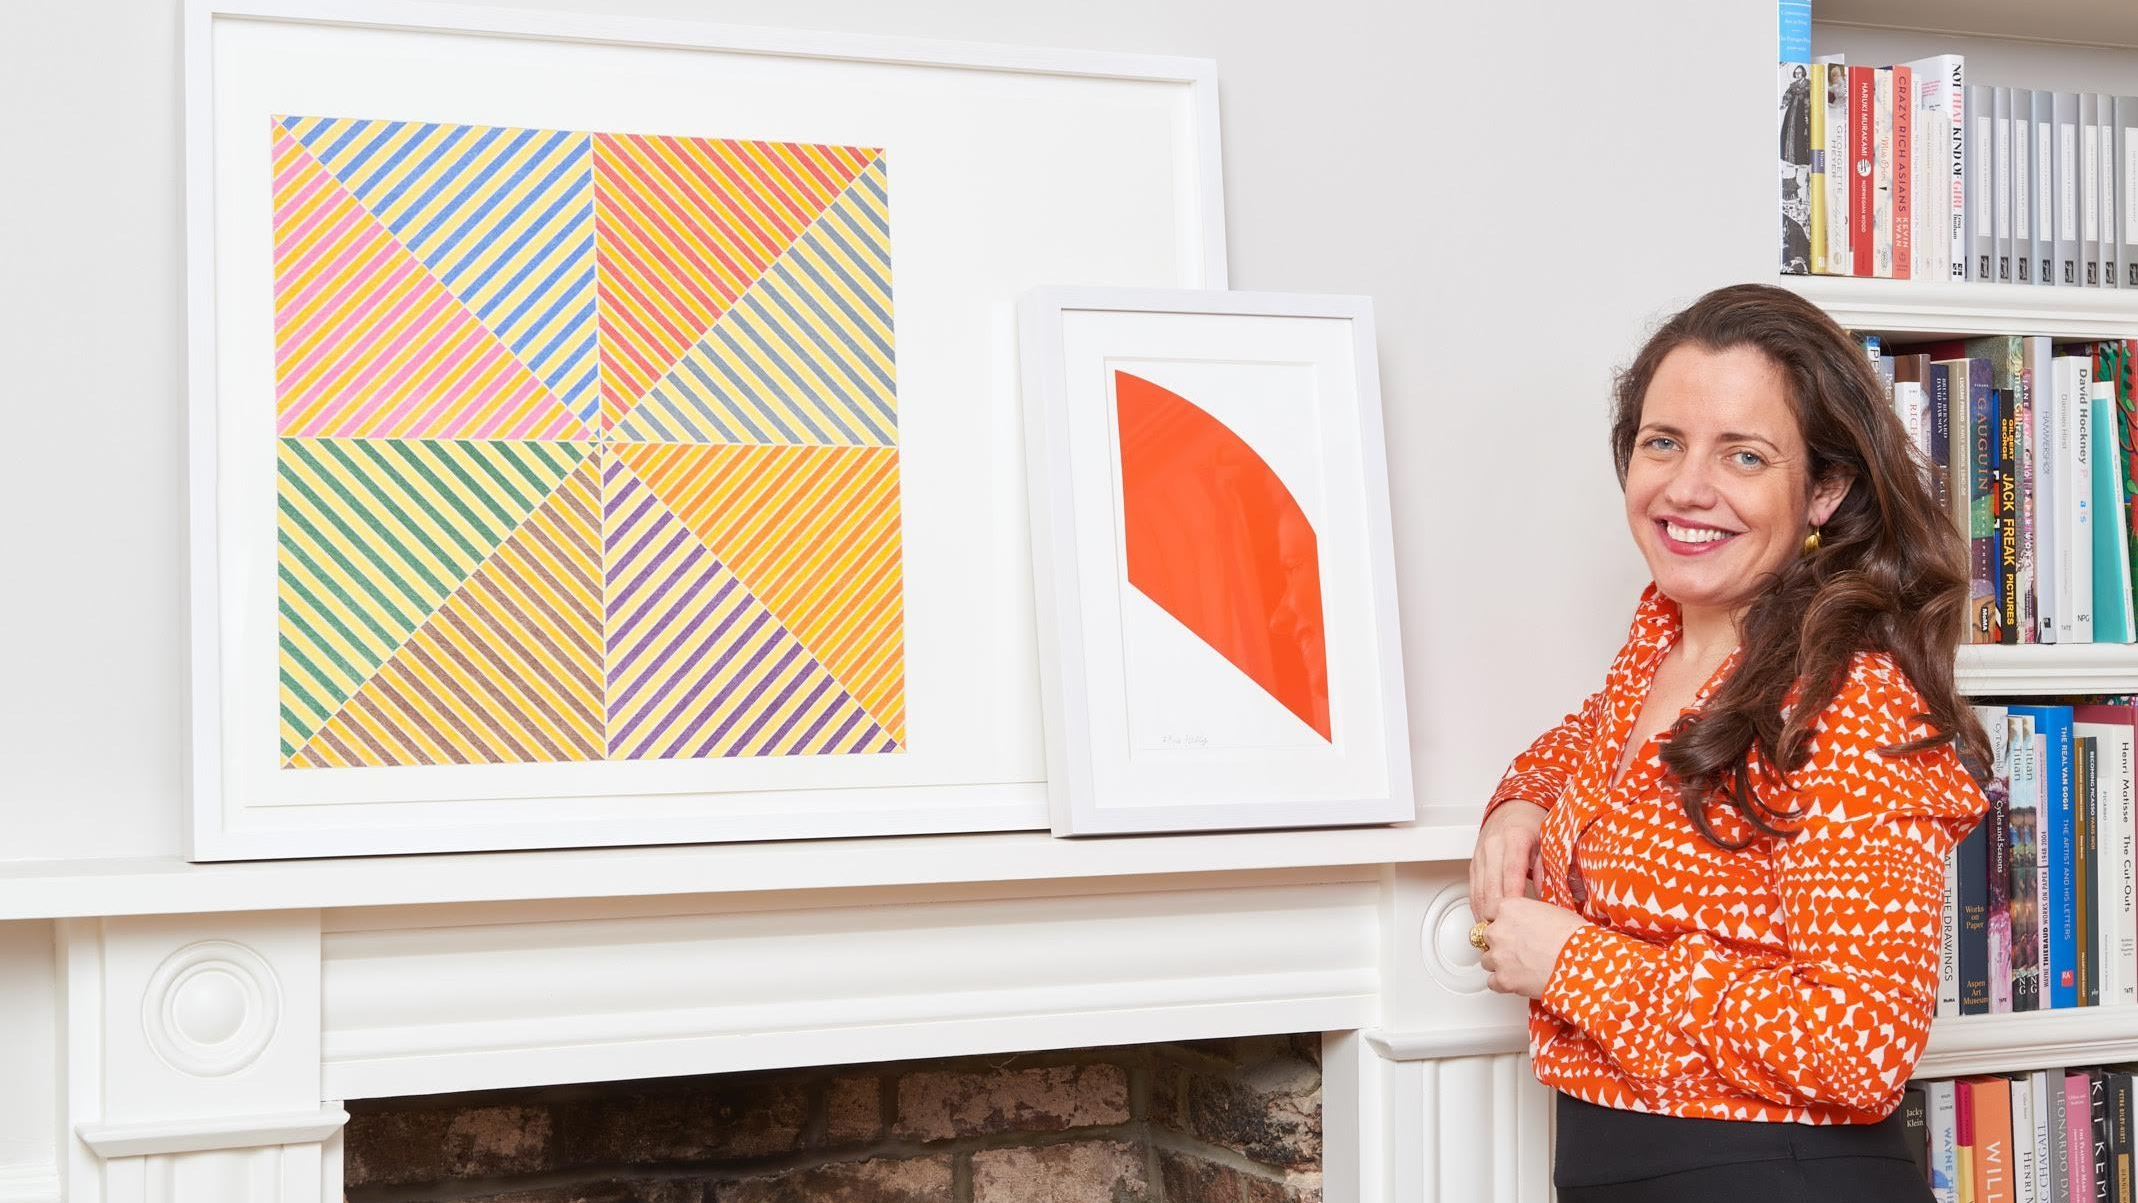 Lyndsey Ingram standing in front of a painting